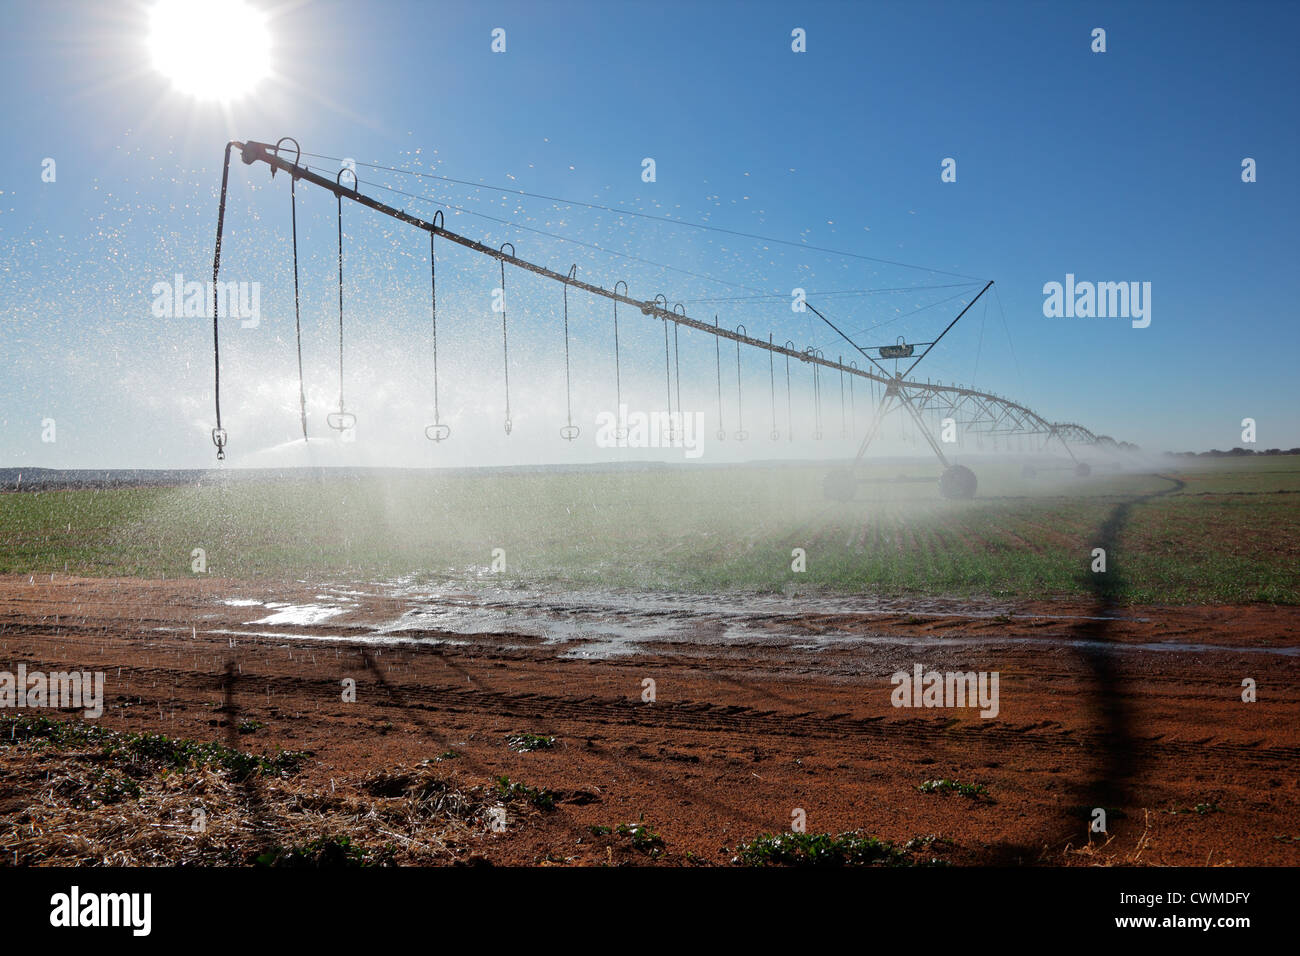 Center pivot crop irrigation system with water sprinklers - Stock Image